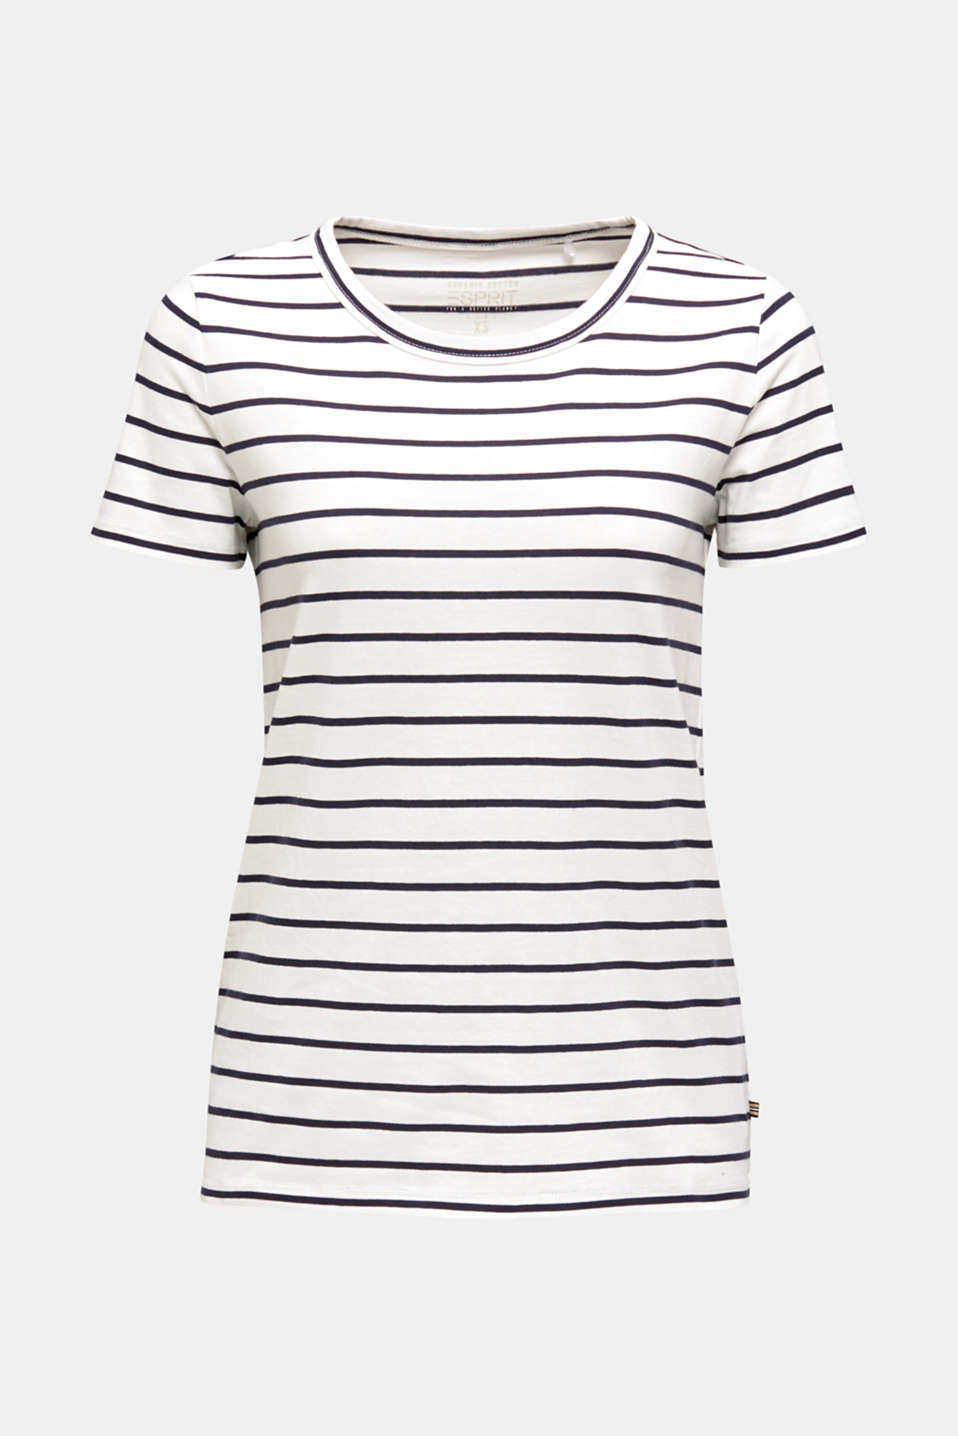 T-shirt with stripes, 100% cotton, OFF WHITE, detail image number 6